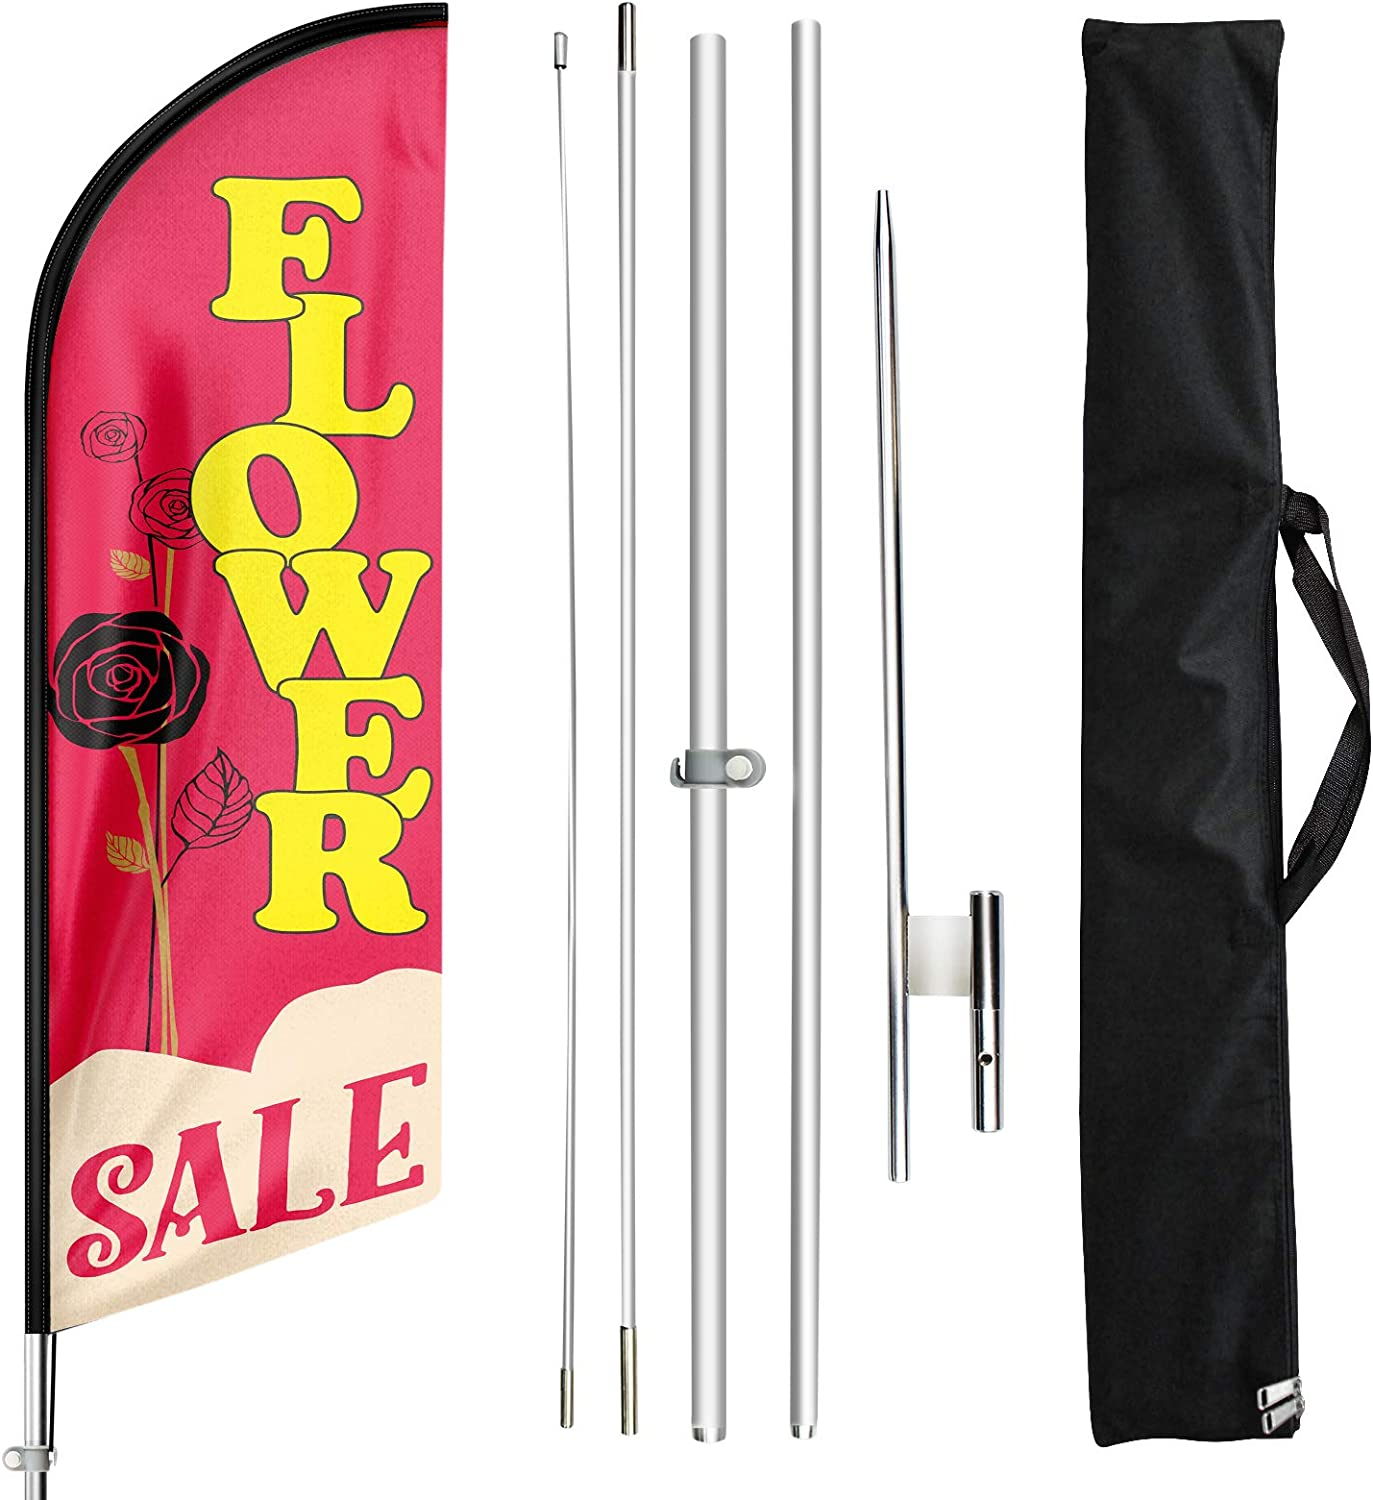 Windless Full Sleeve Swooper Flag w// Pole /& Spike WALK IN DRIVE OUT Red Yellow White